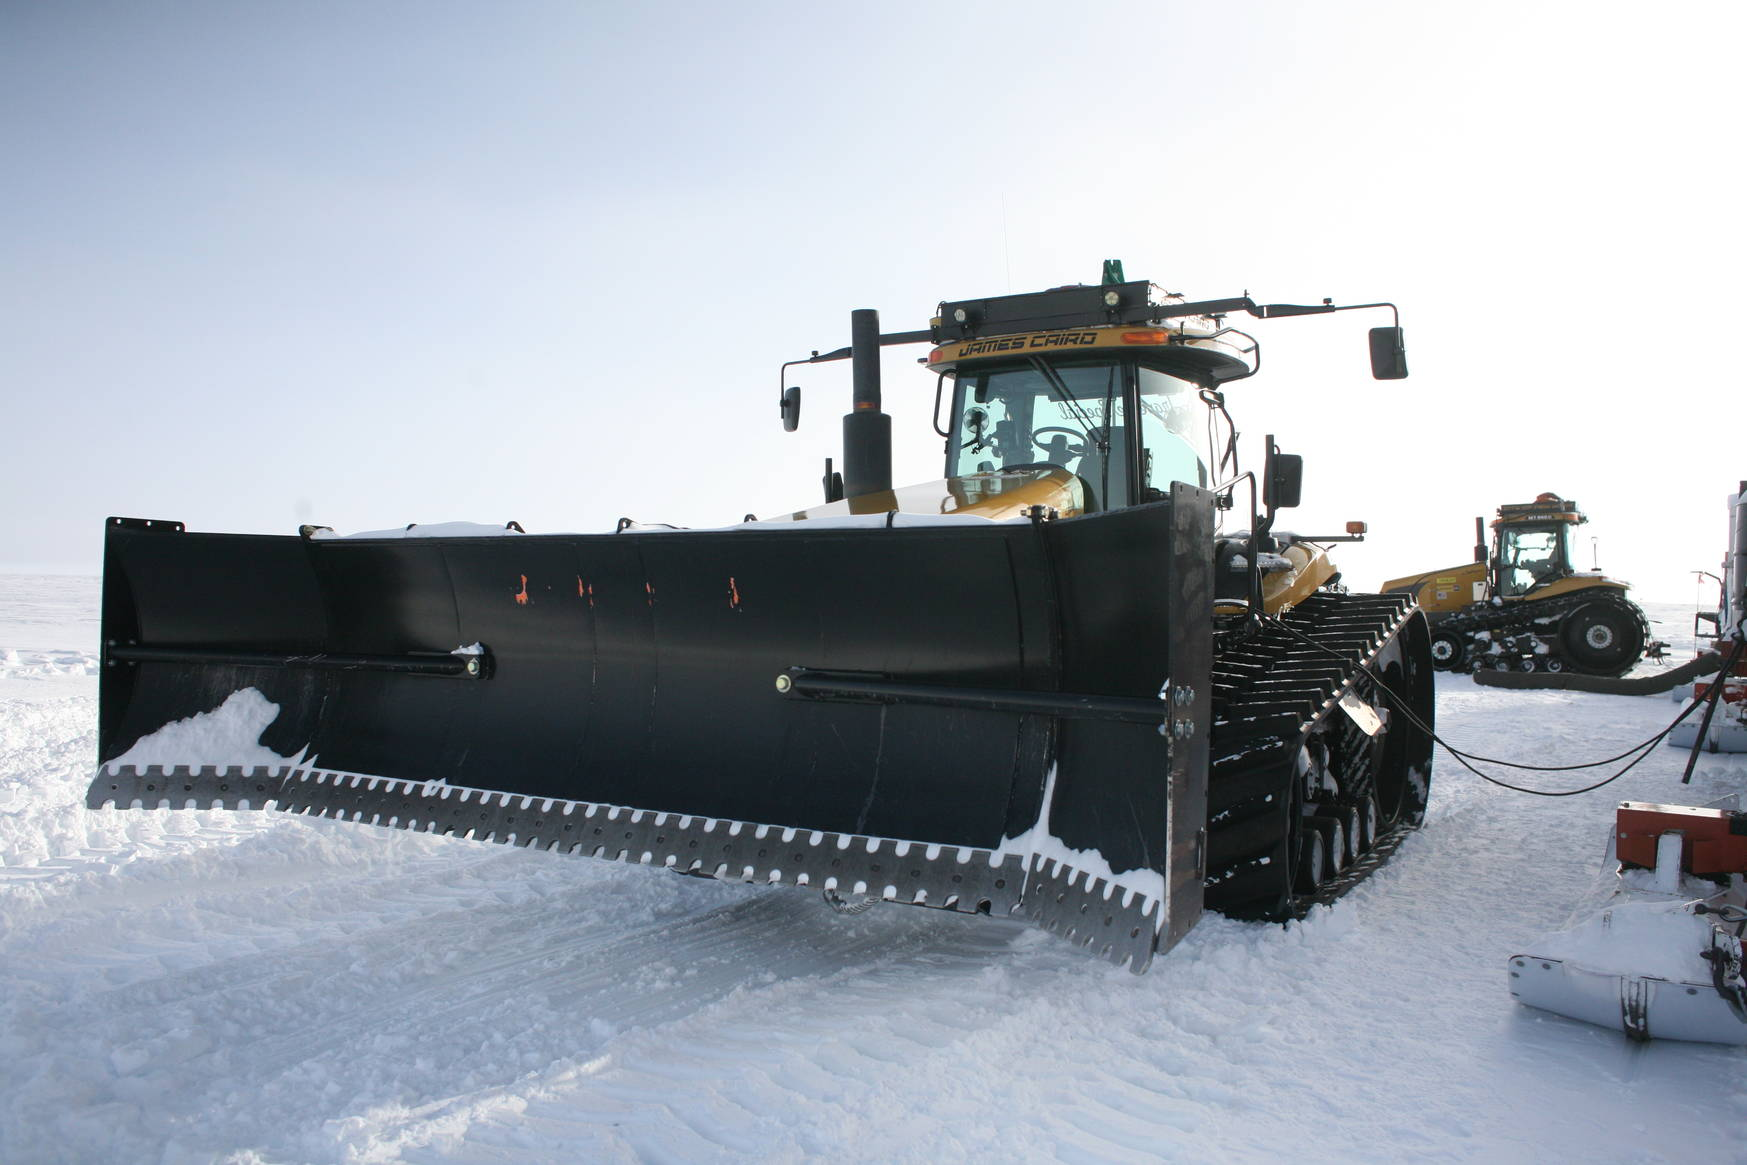 Huge tractors indeed. Here you see one that is equipped with a blade to clear the path of snow drifts.